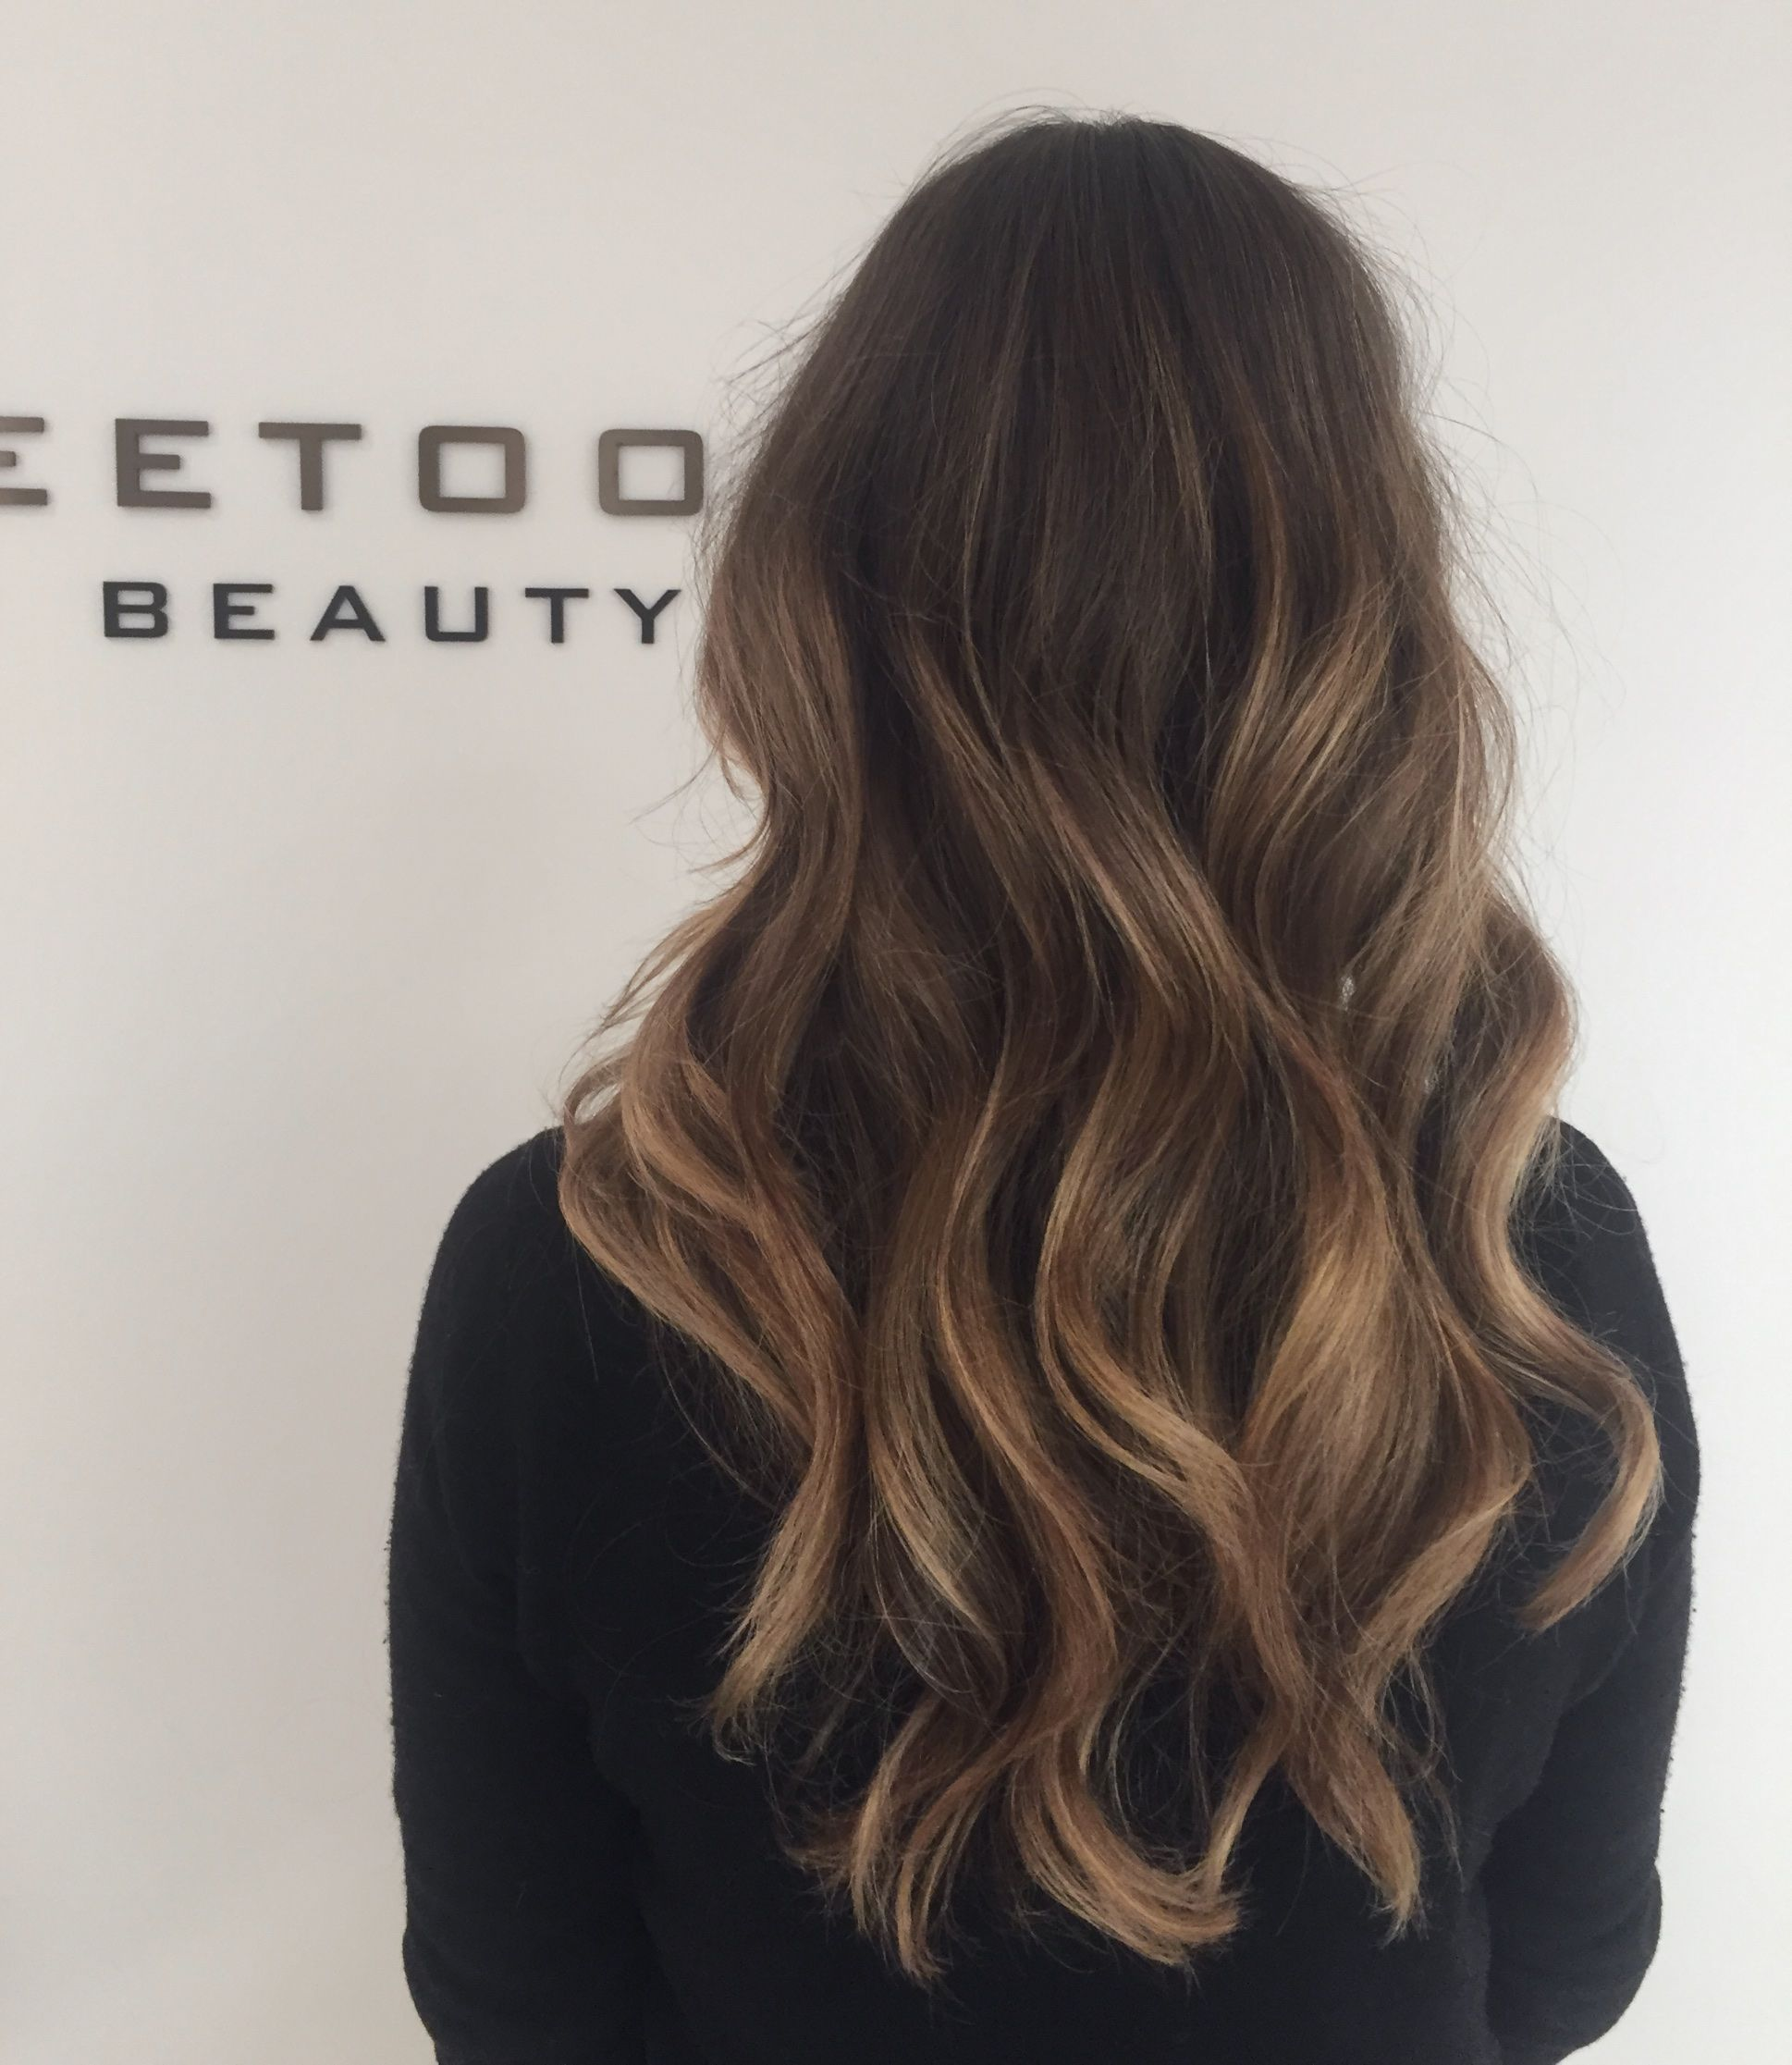 Natural balayage | Hair, Makeup, and Nails | Pinterest ...